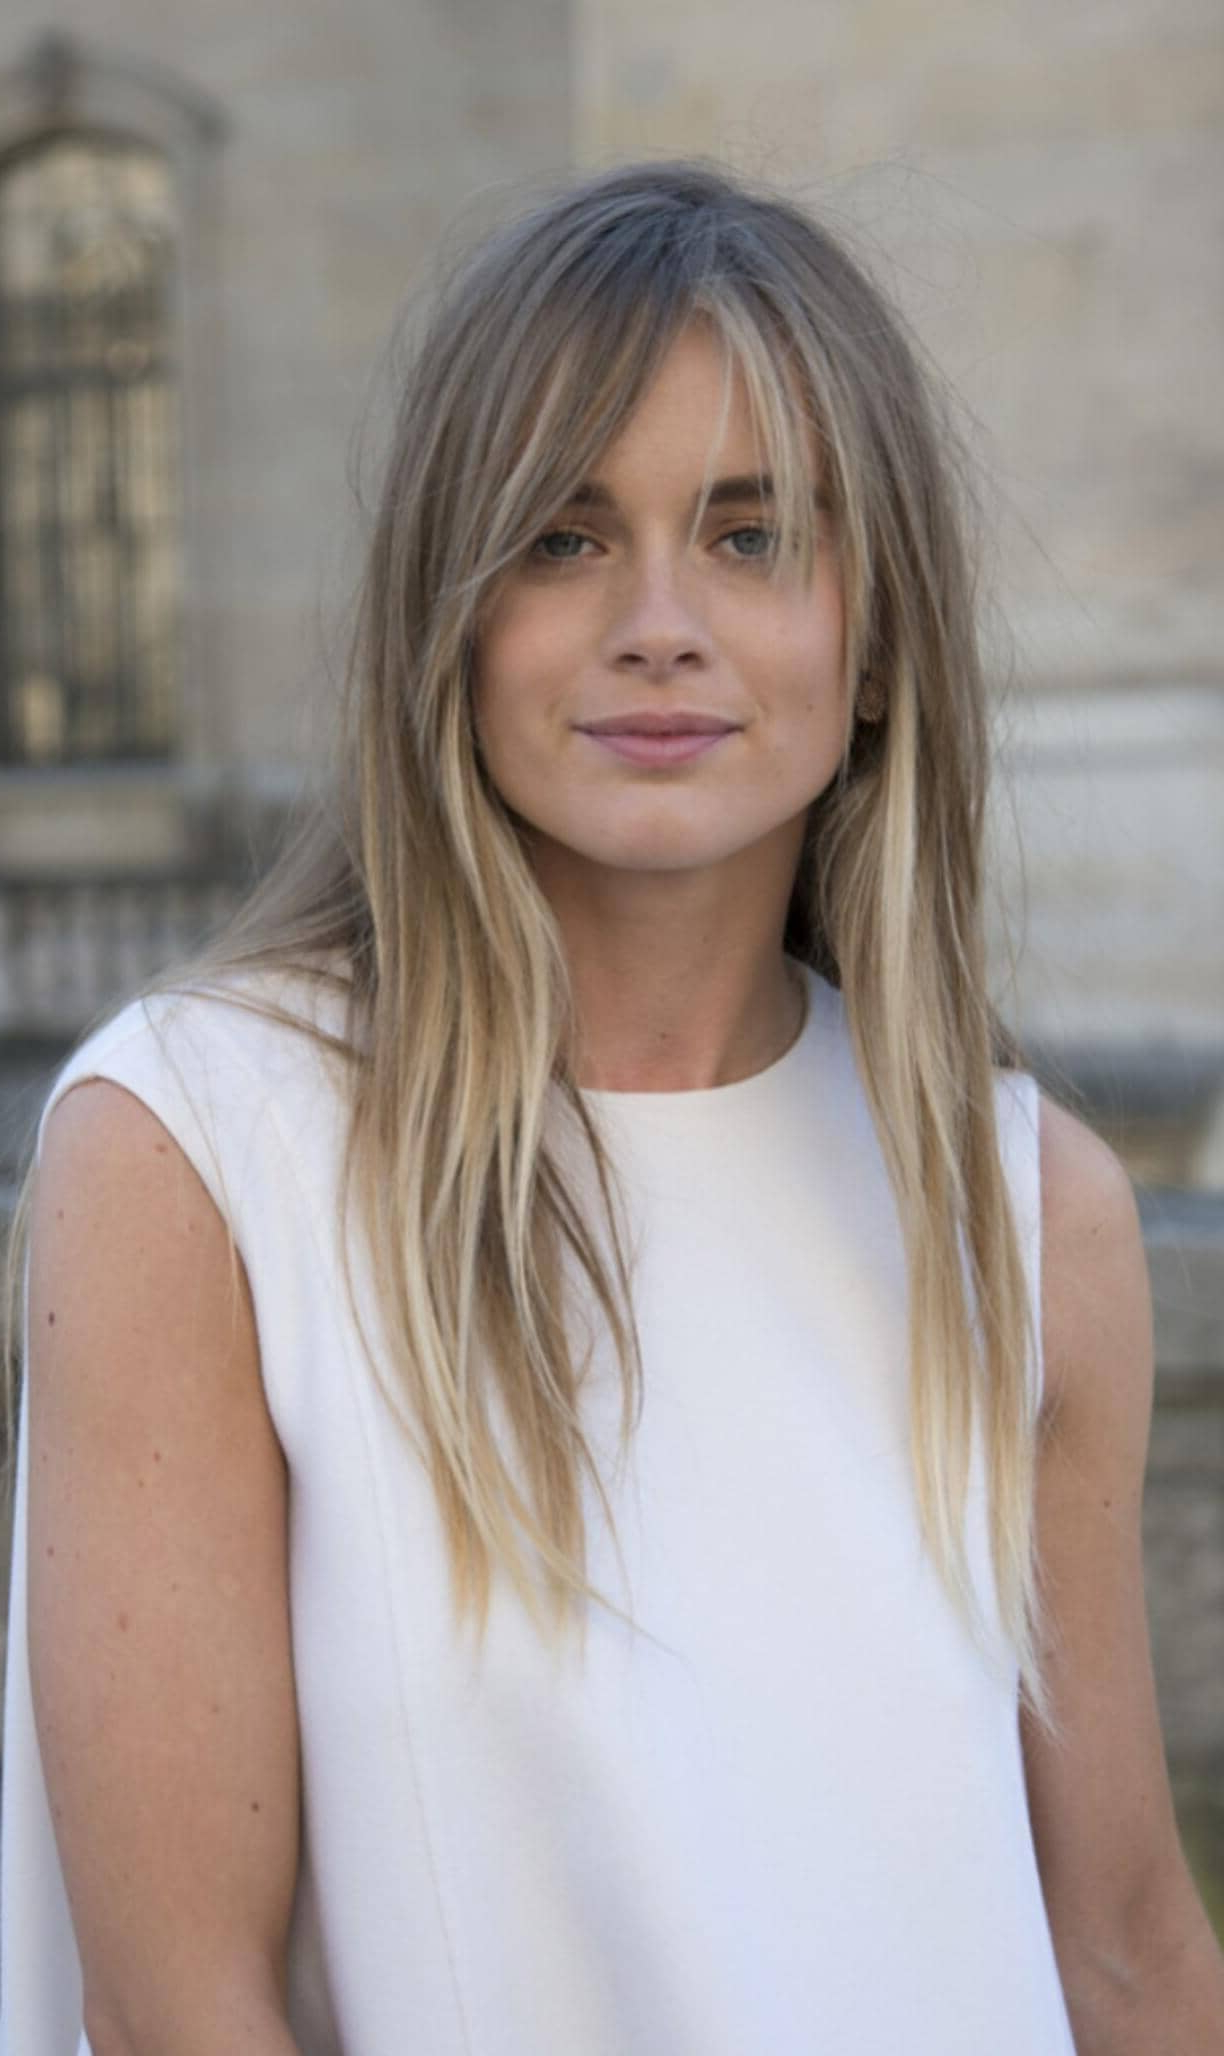 50 Fresh Hairstyle Ideas With Side Bangs To Shake Up Your Style Intended For Short Haircuts With Long Side Bangs (View 6 of 25)